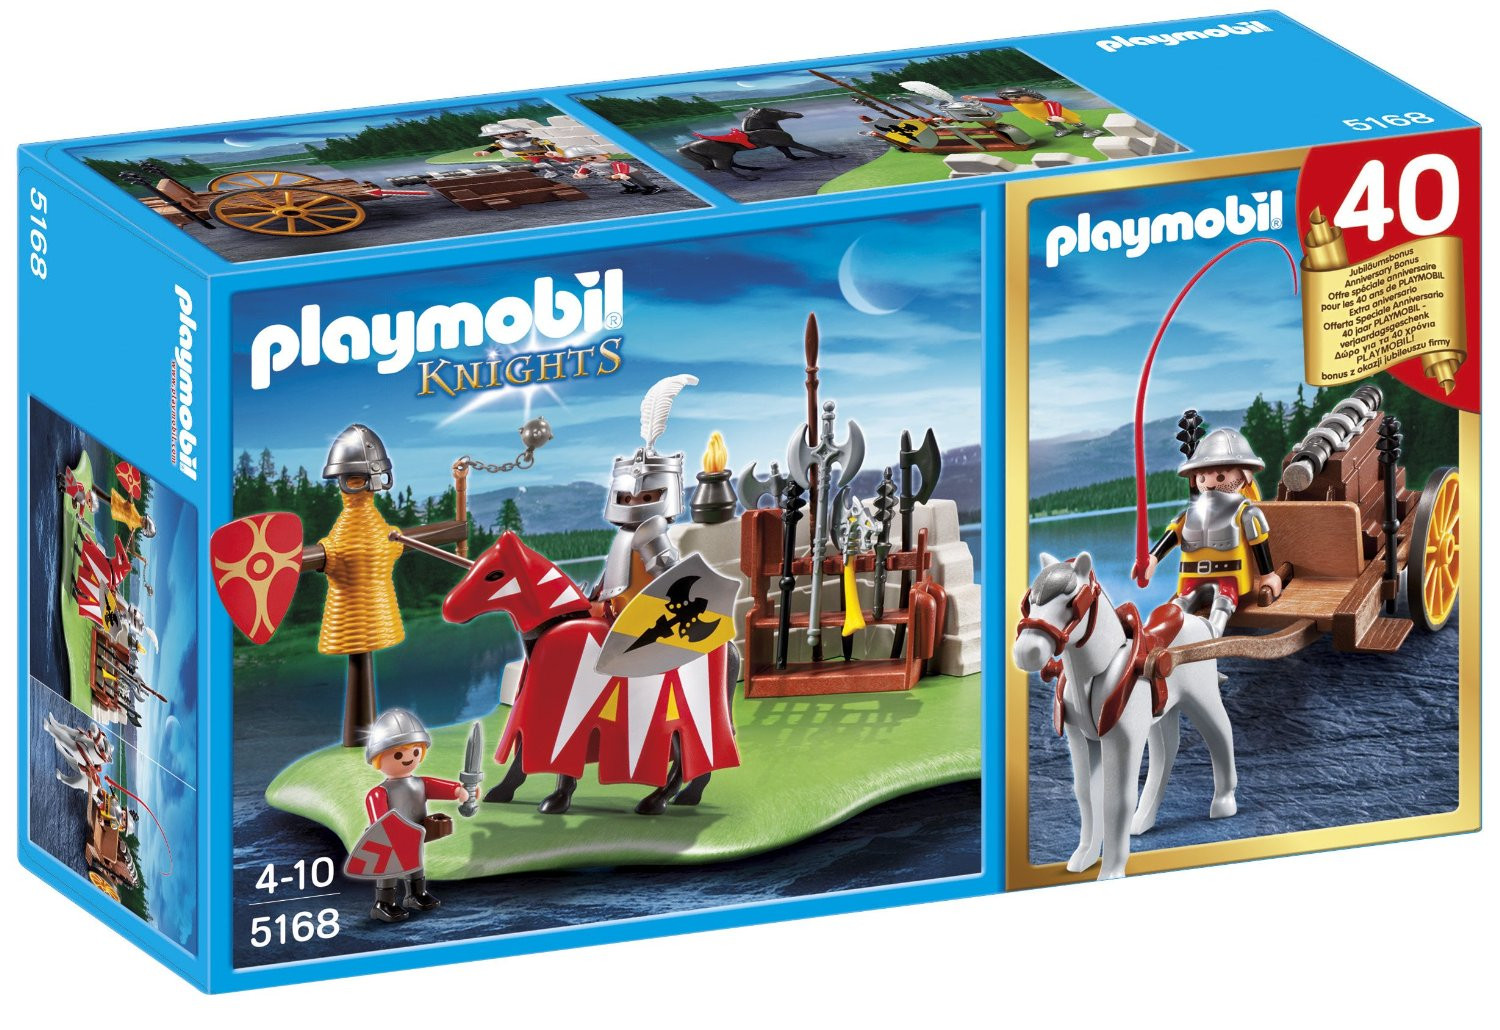 Playmobil Anniversary Compact Set Knight